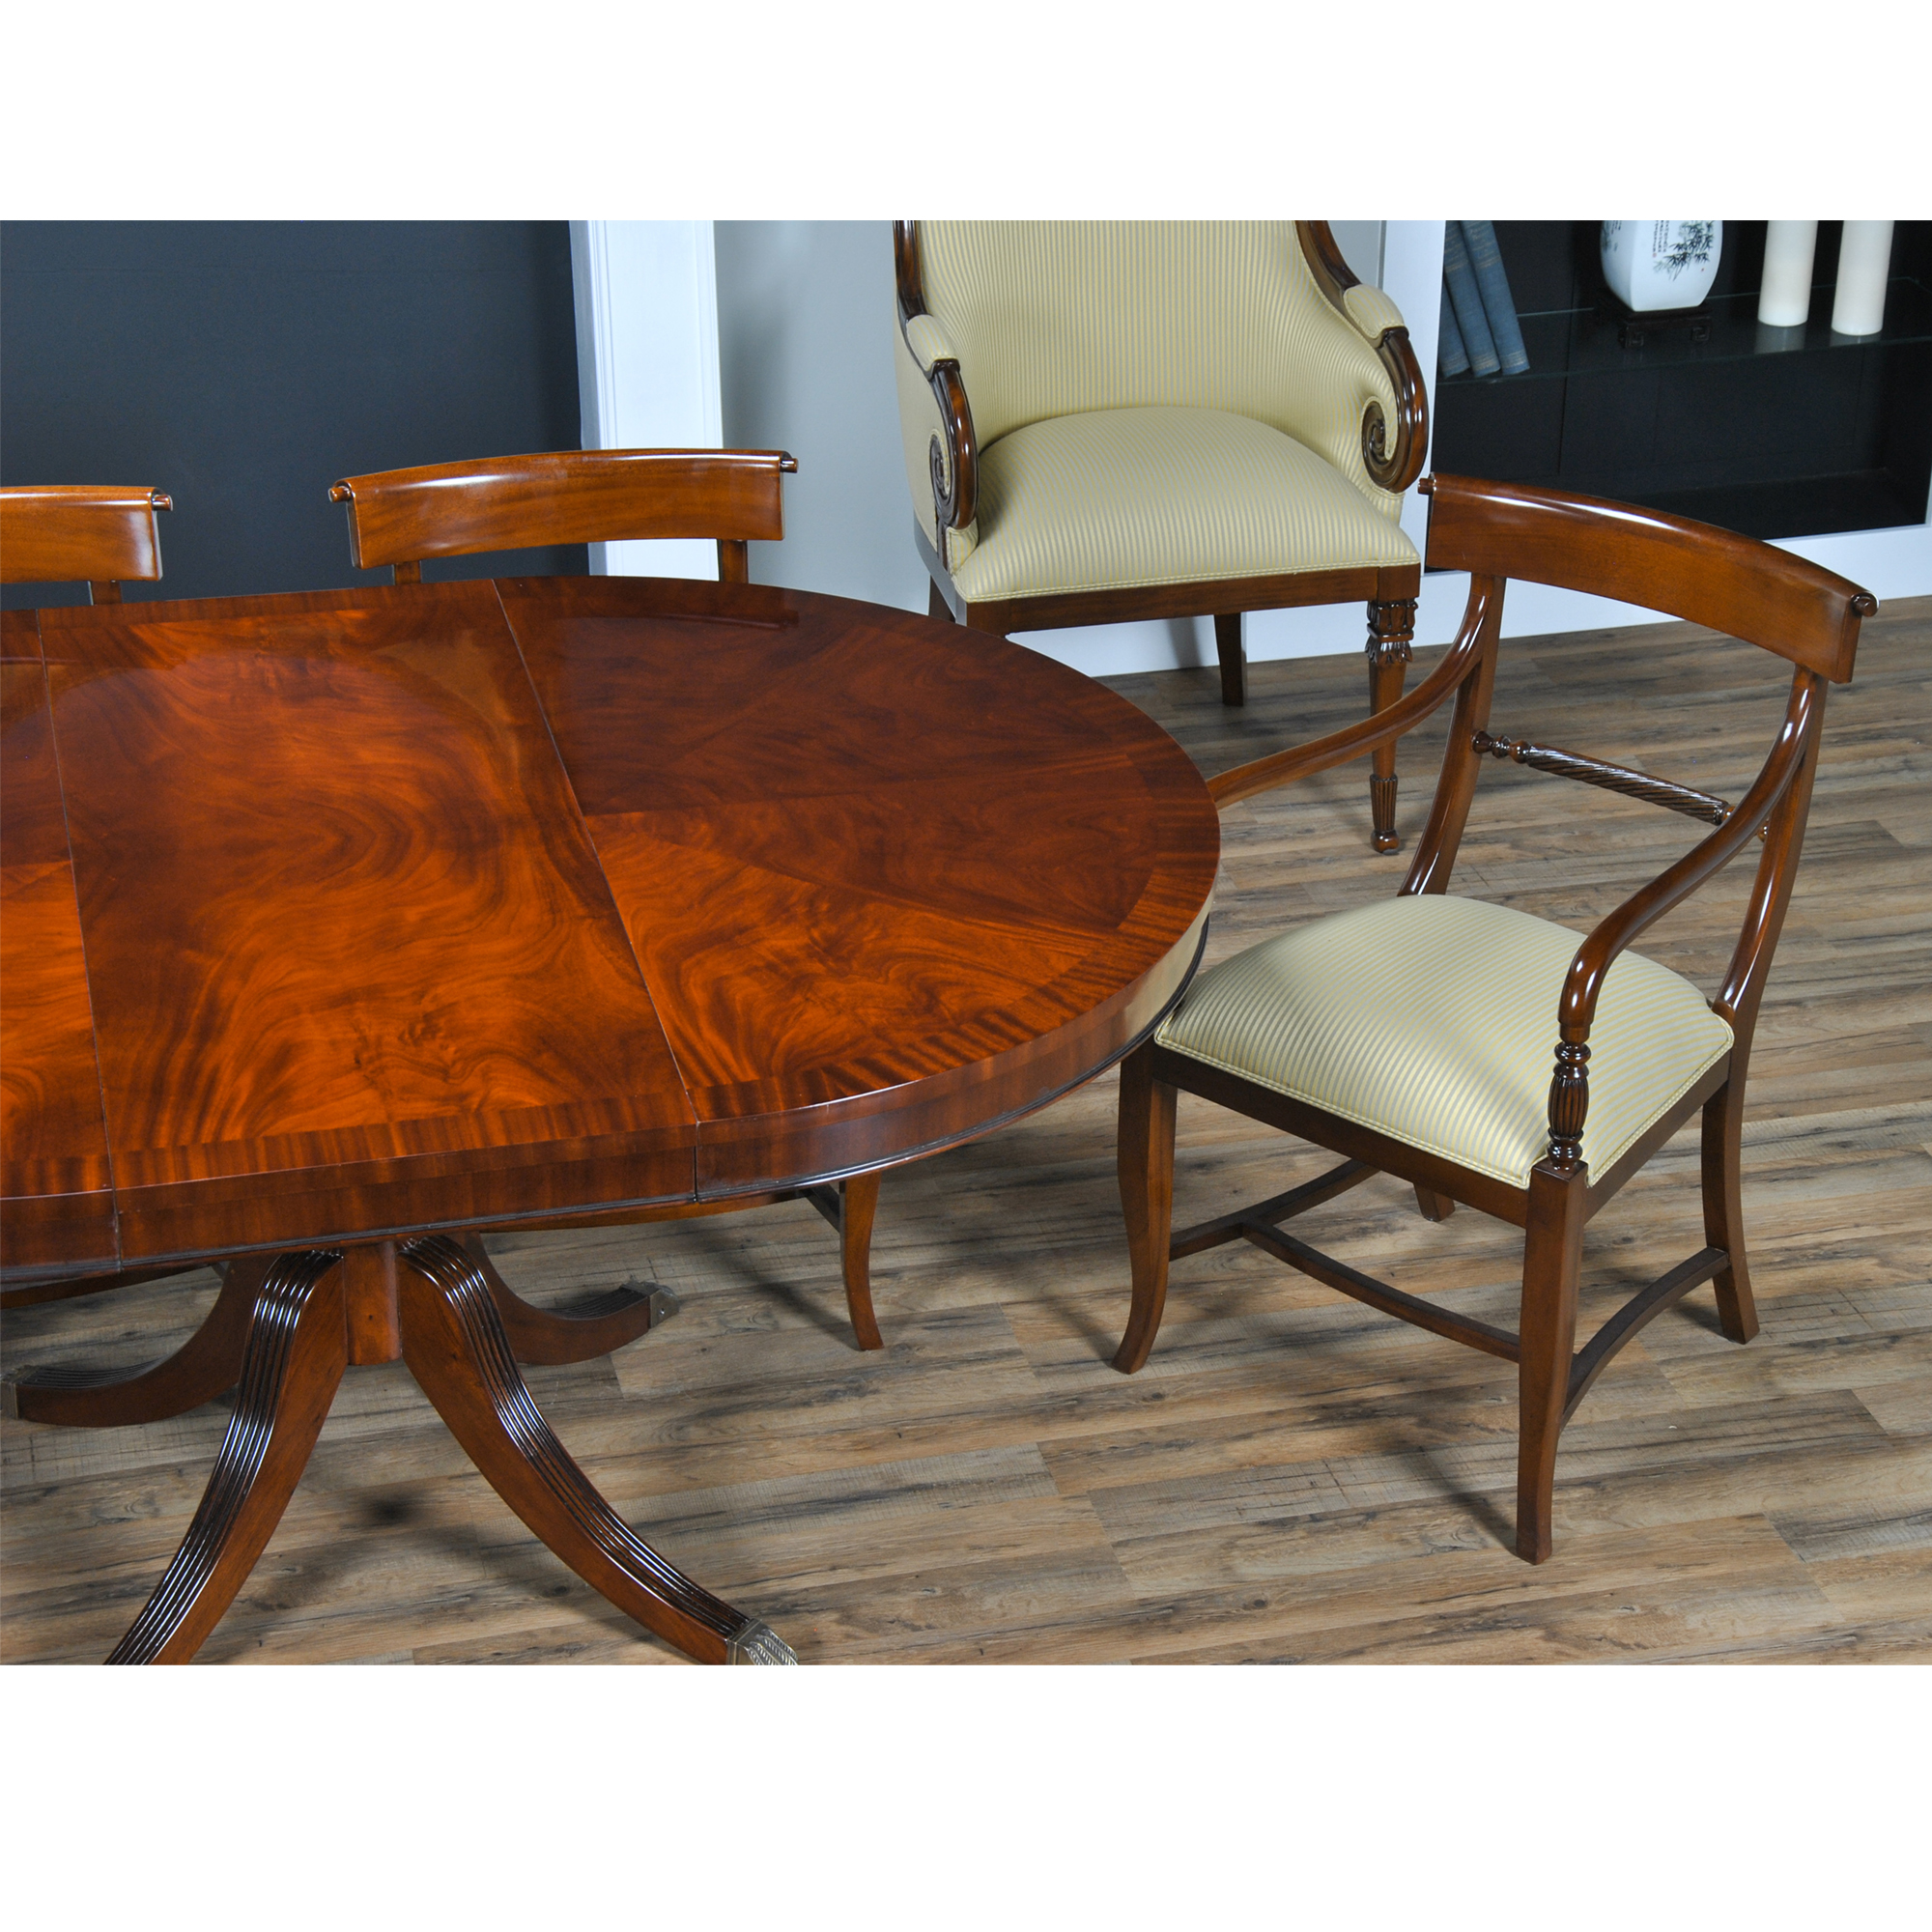 48quot Round Dining Table Niagara Furniture Round Mahogany